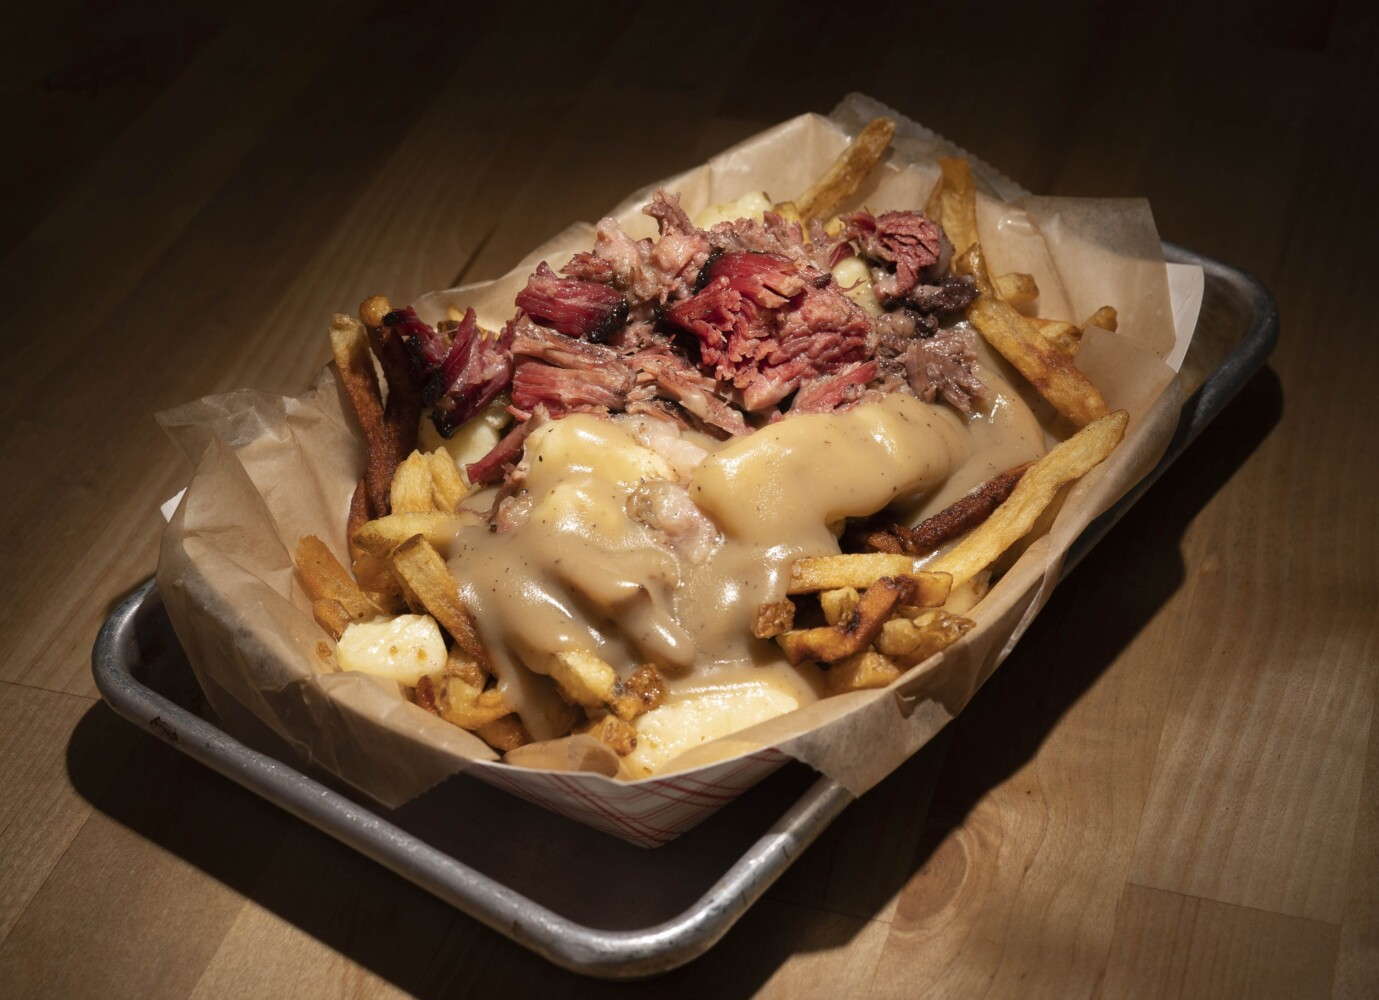 Dine Out Maine: It's a tight fit at Royale Lunch Bar, but on the whole, the menu works - Portland Press Herald